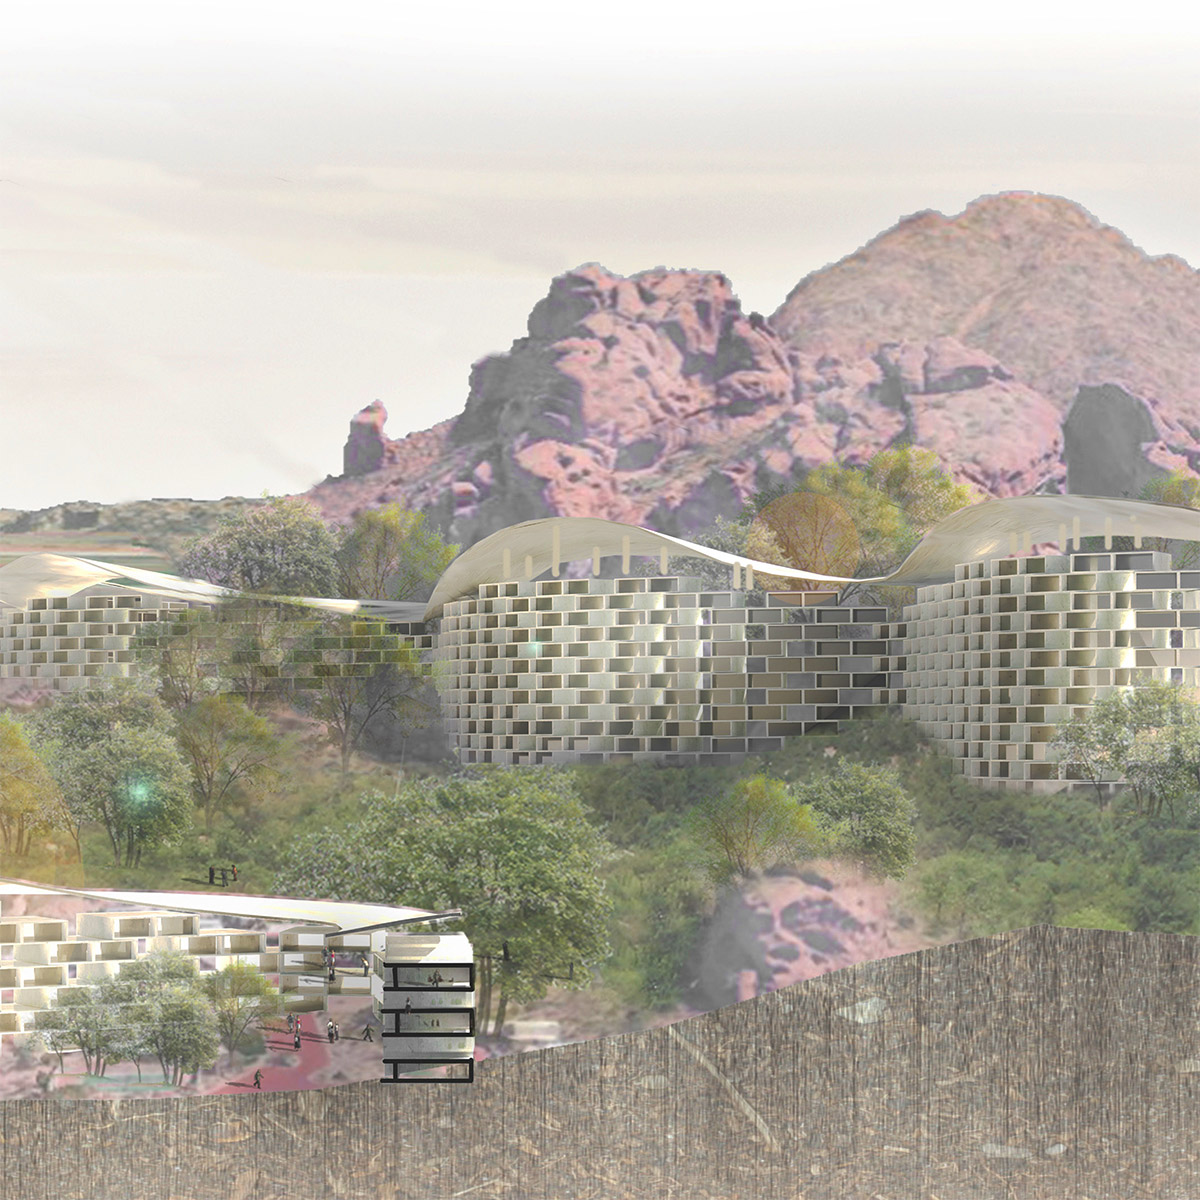 Section perspective between two paired housing bars set within the microclimate of Camelback Mountain by student Donglei Cao